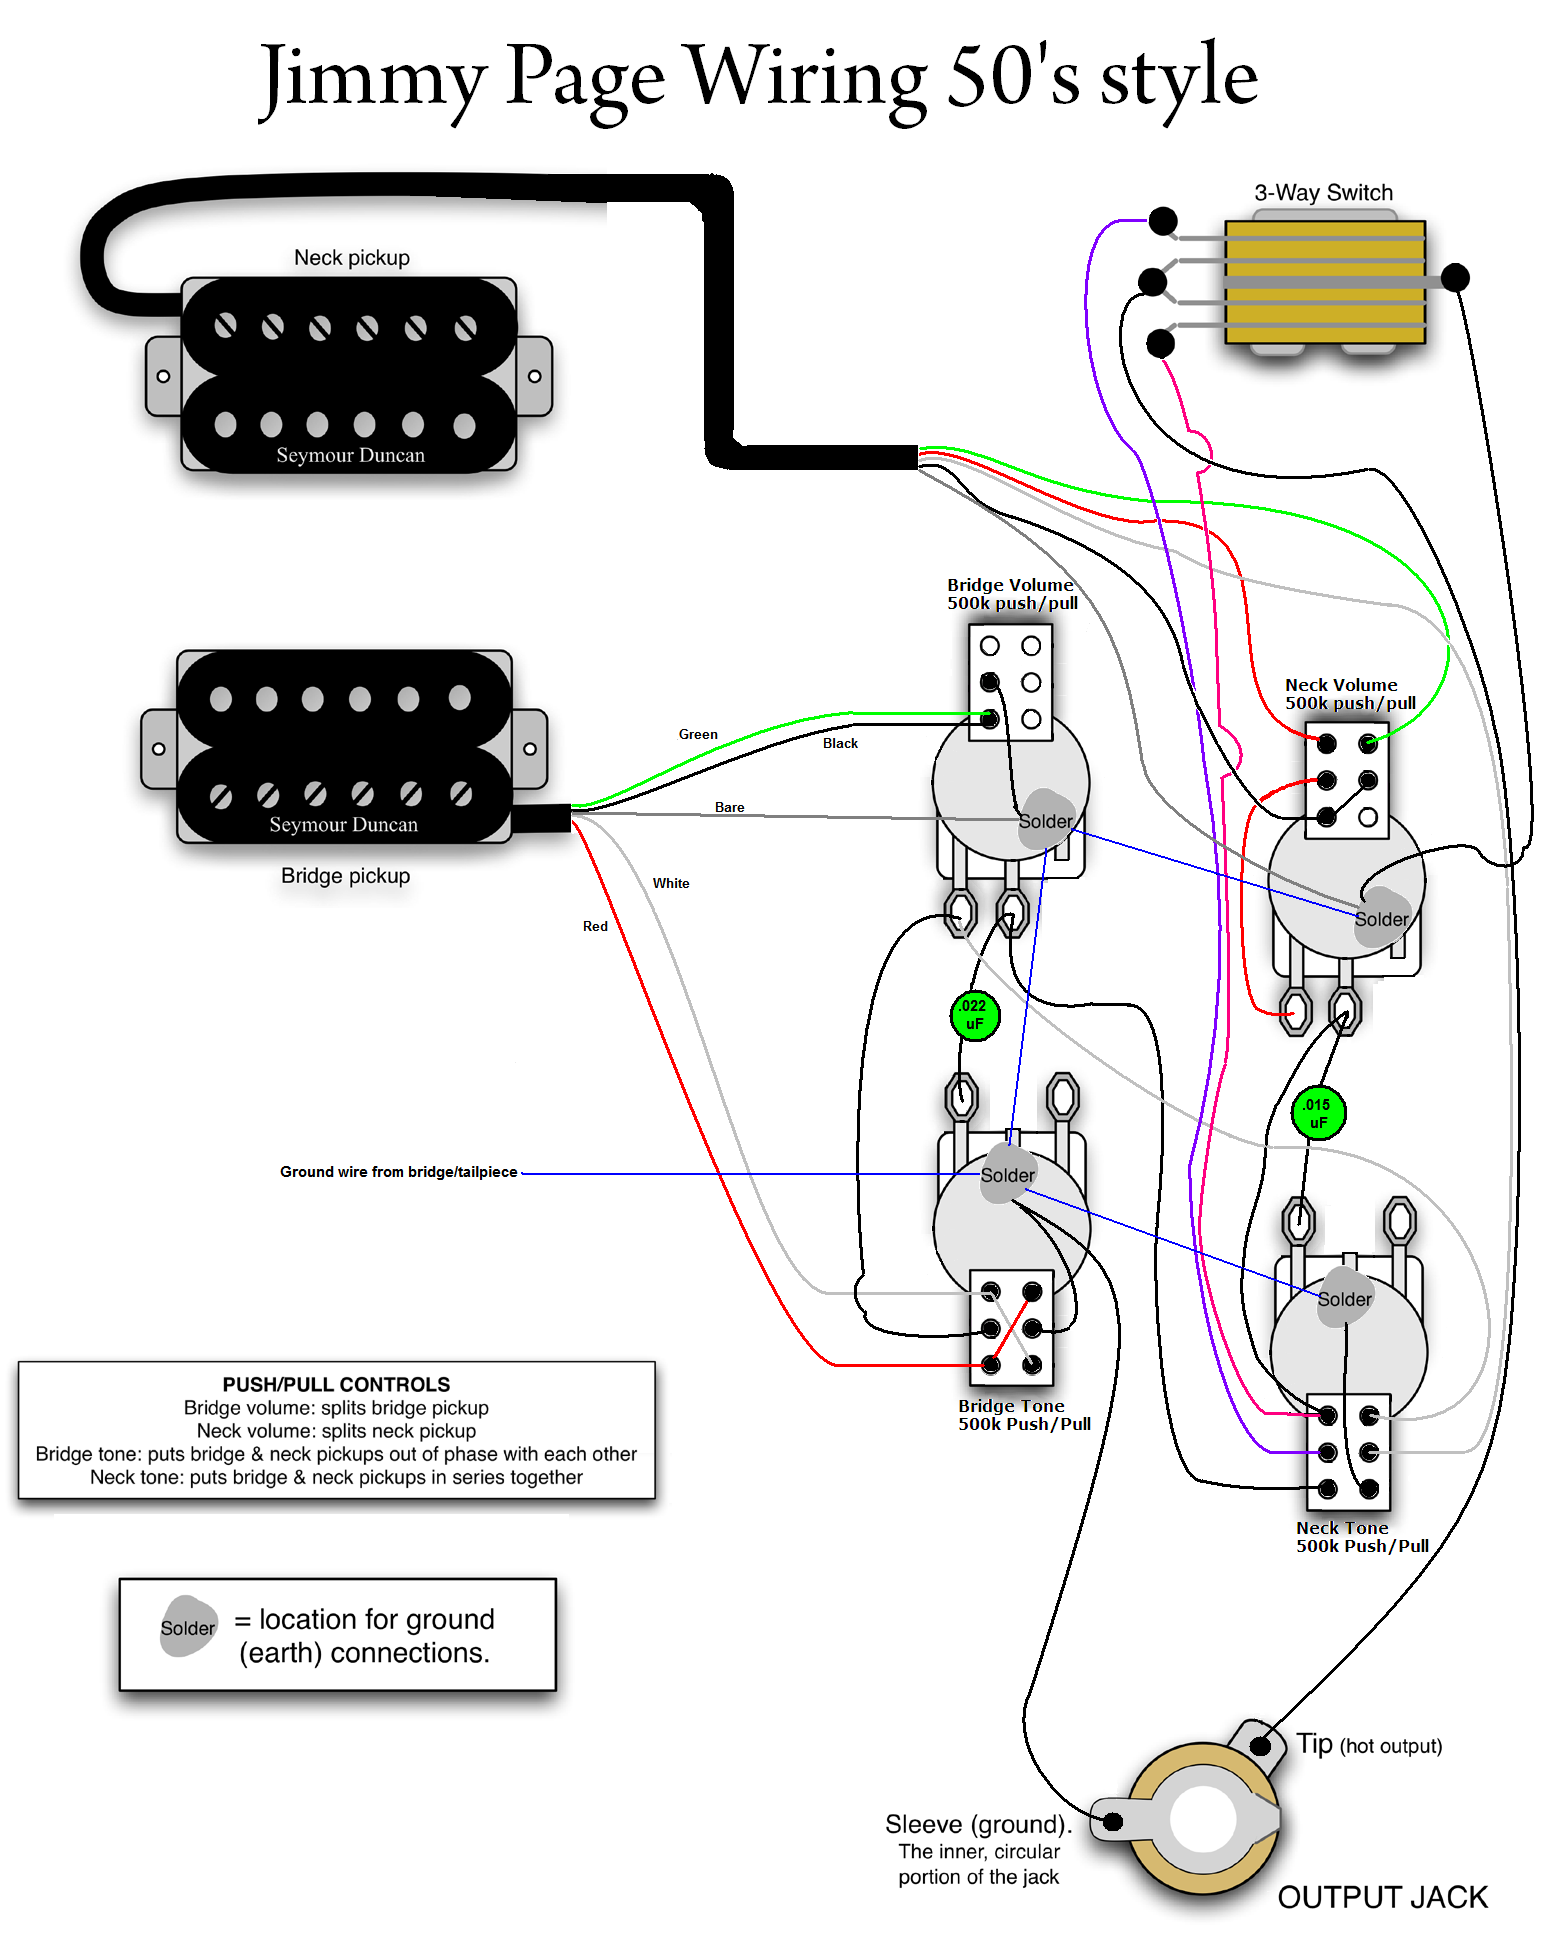 Jimmy Page 50s Wiring Mylespaulcom Instruments In 2018 3 Way Schematic